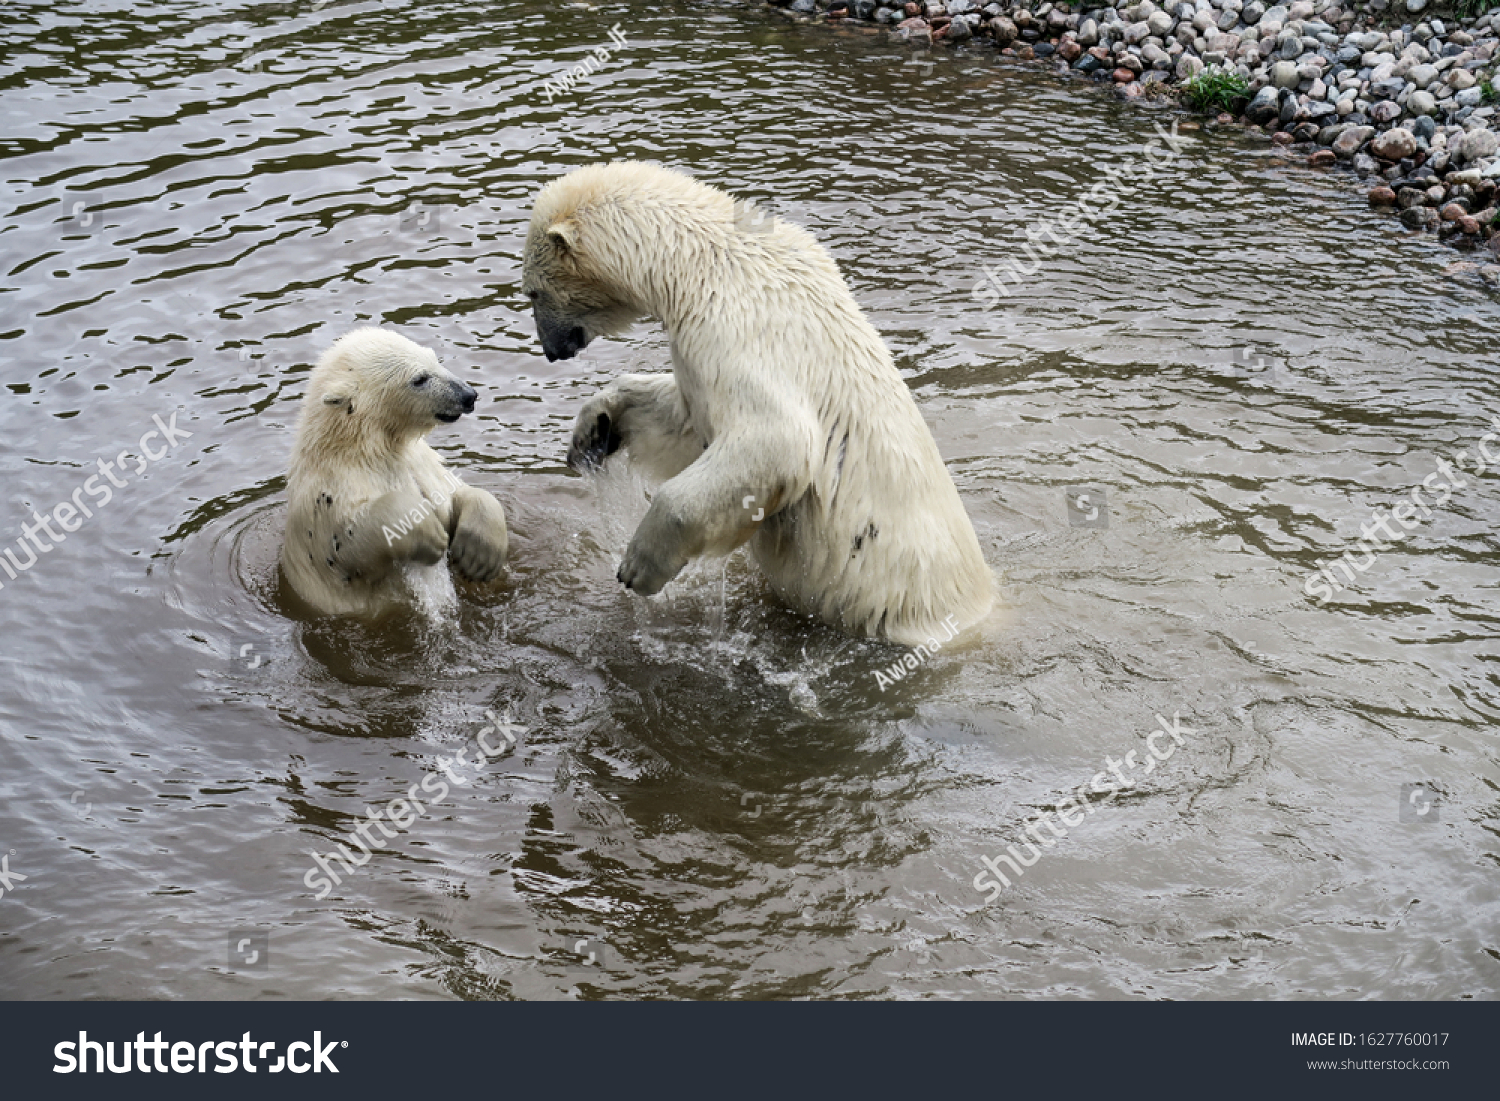 Mama polar bear playing in water with her cub